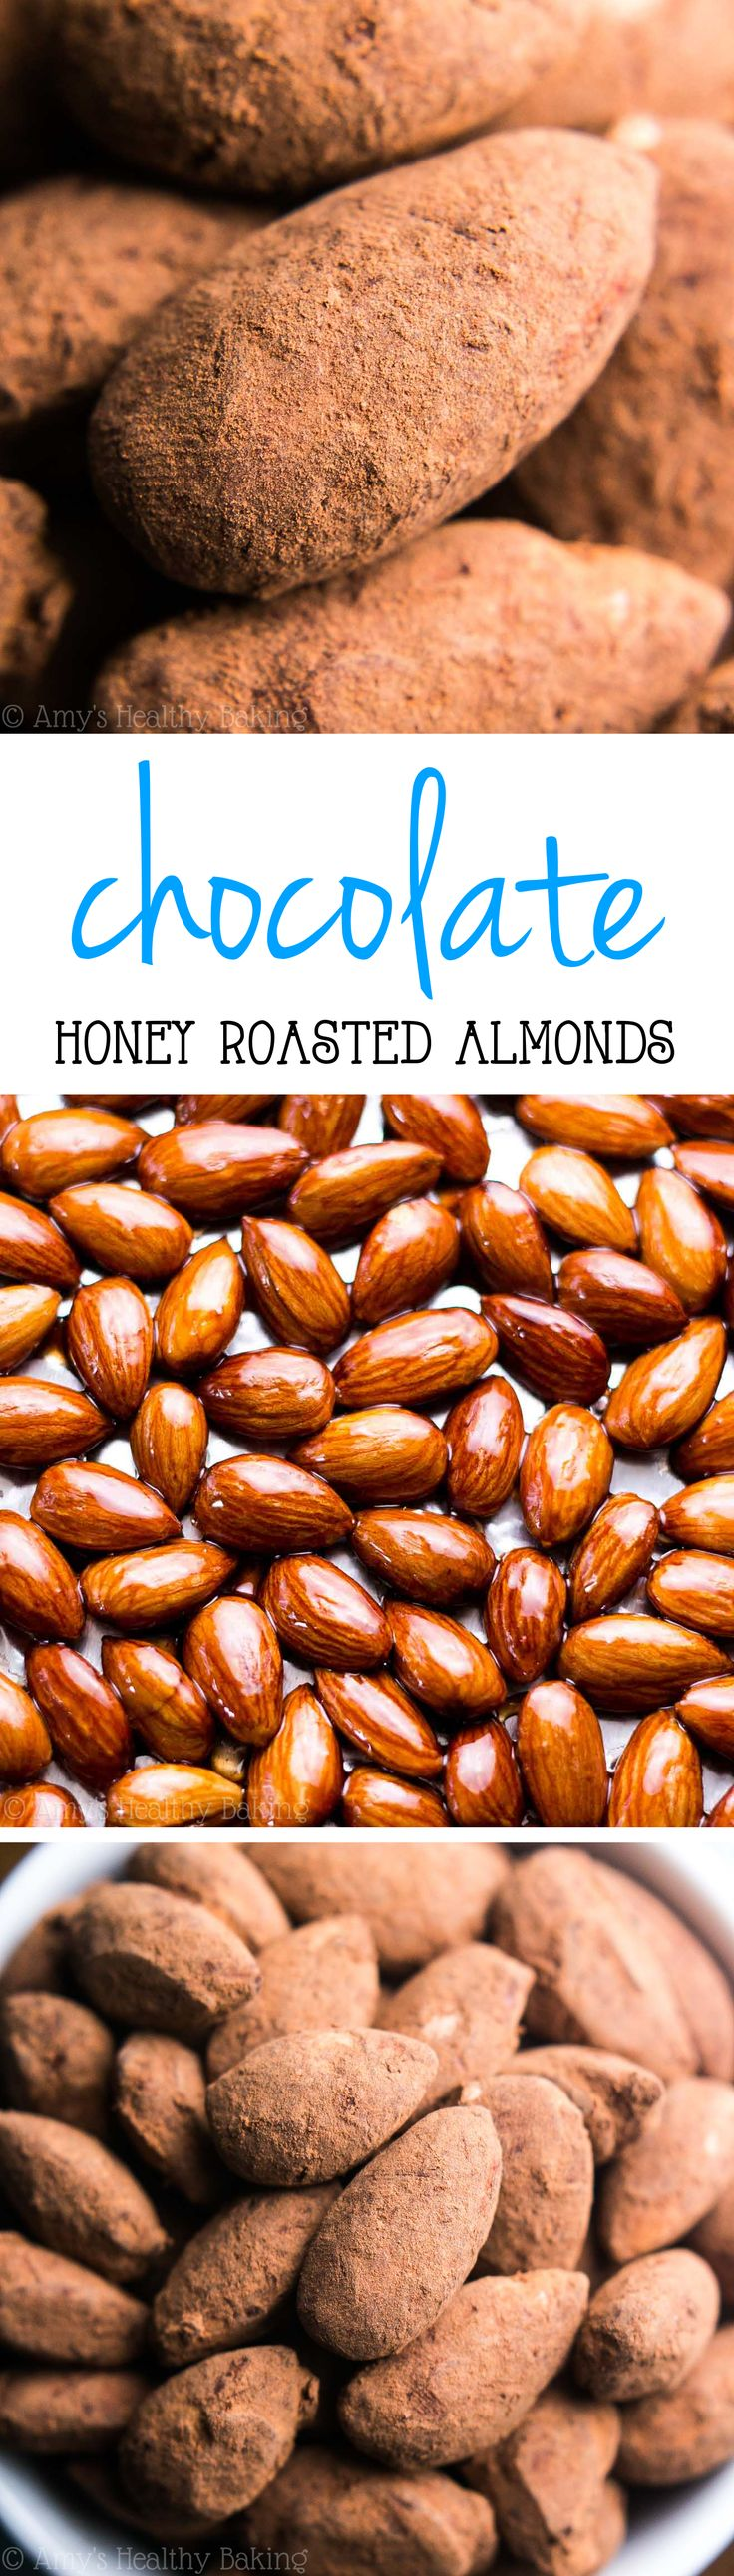 Chocolate Honey Roasted Almonds -- I love this easy & healthy snack! SO much better than anything store-bought!